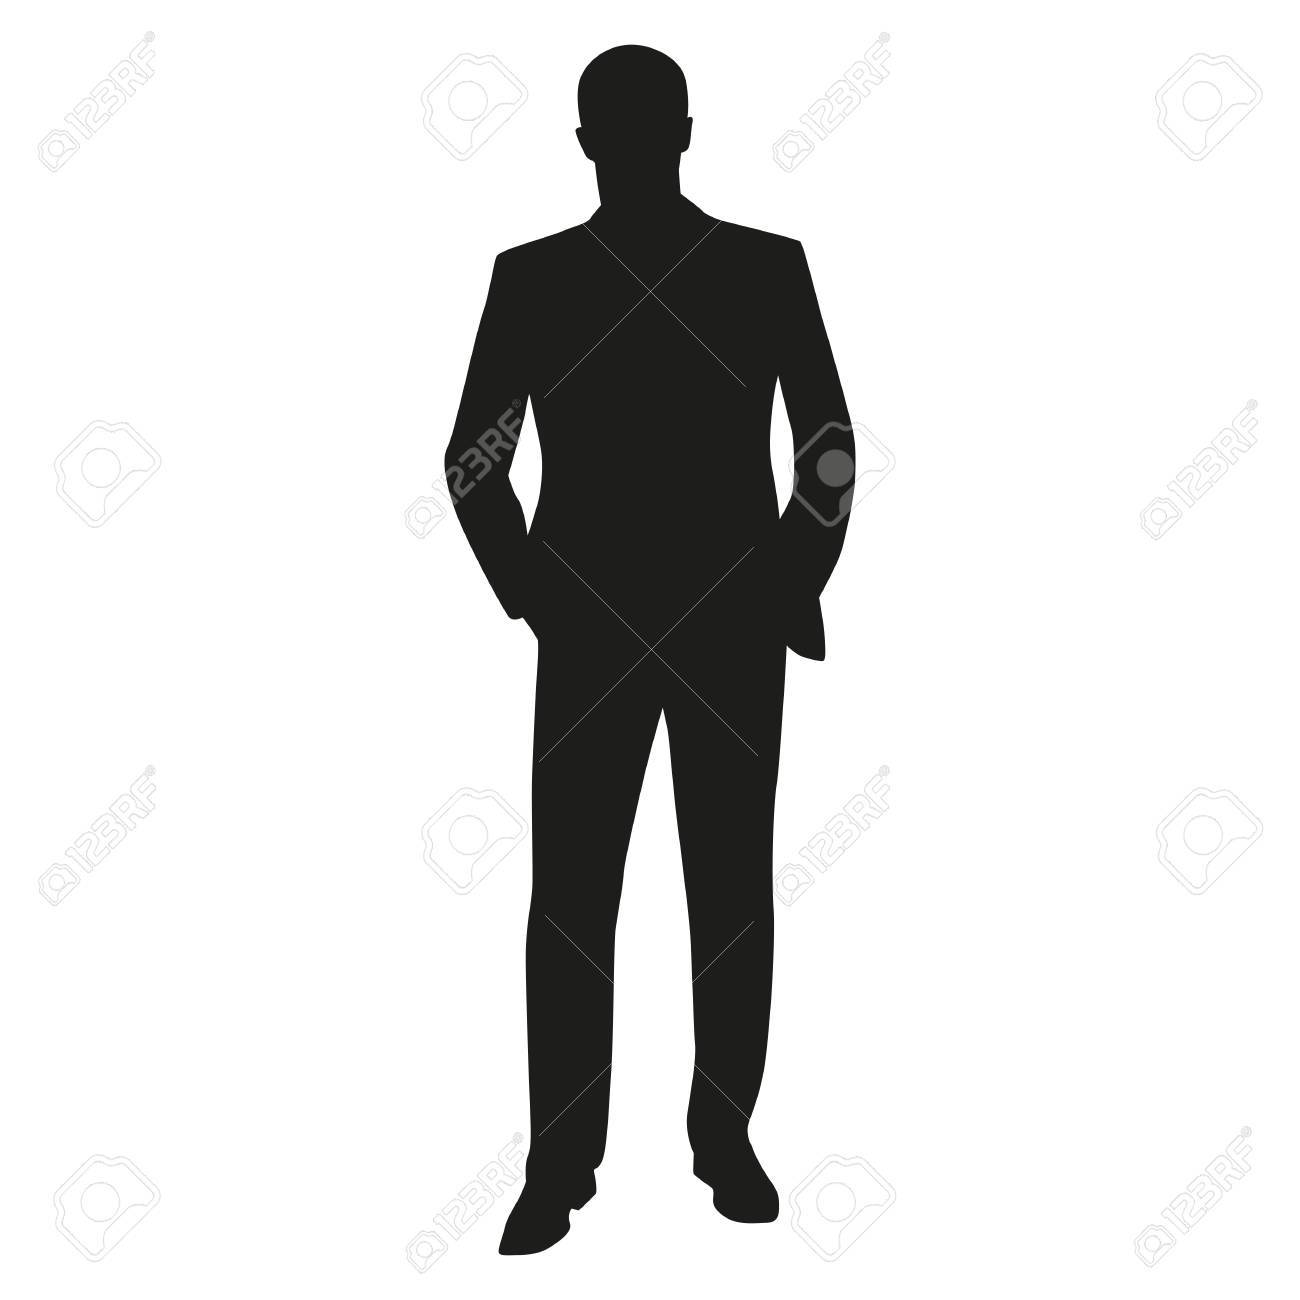 business man vector silhouette royalty free cliparts vectors and rh 123rf com main vector of zika pathogen main vector of zika pathogen